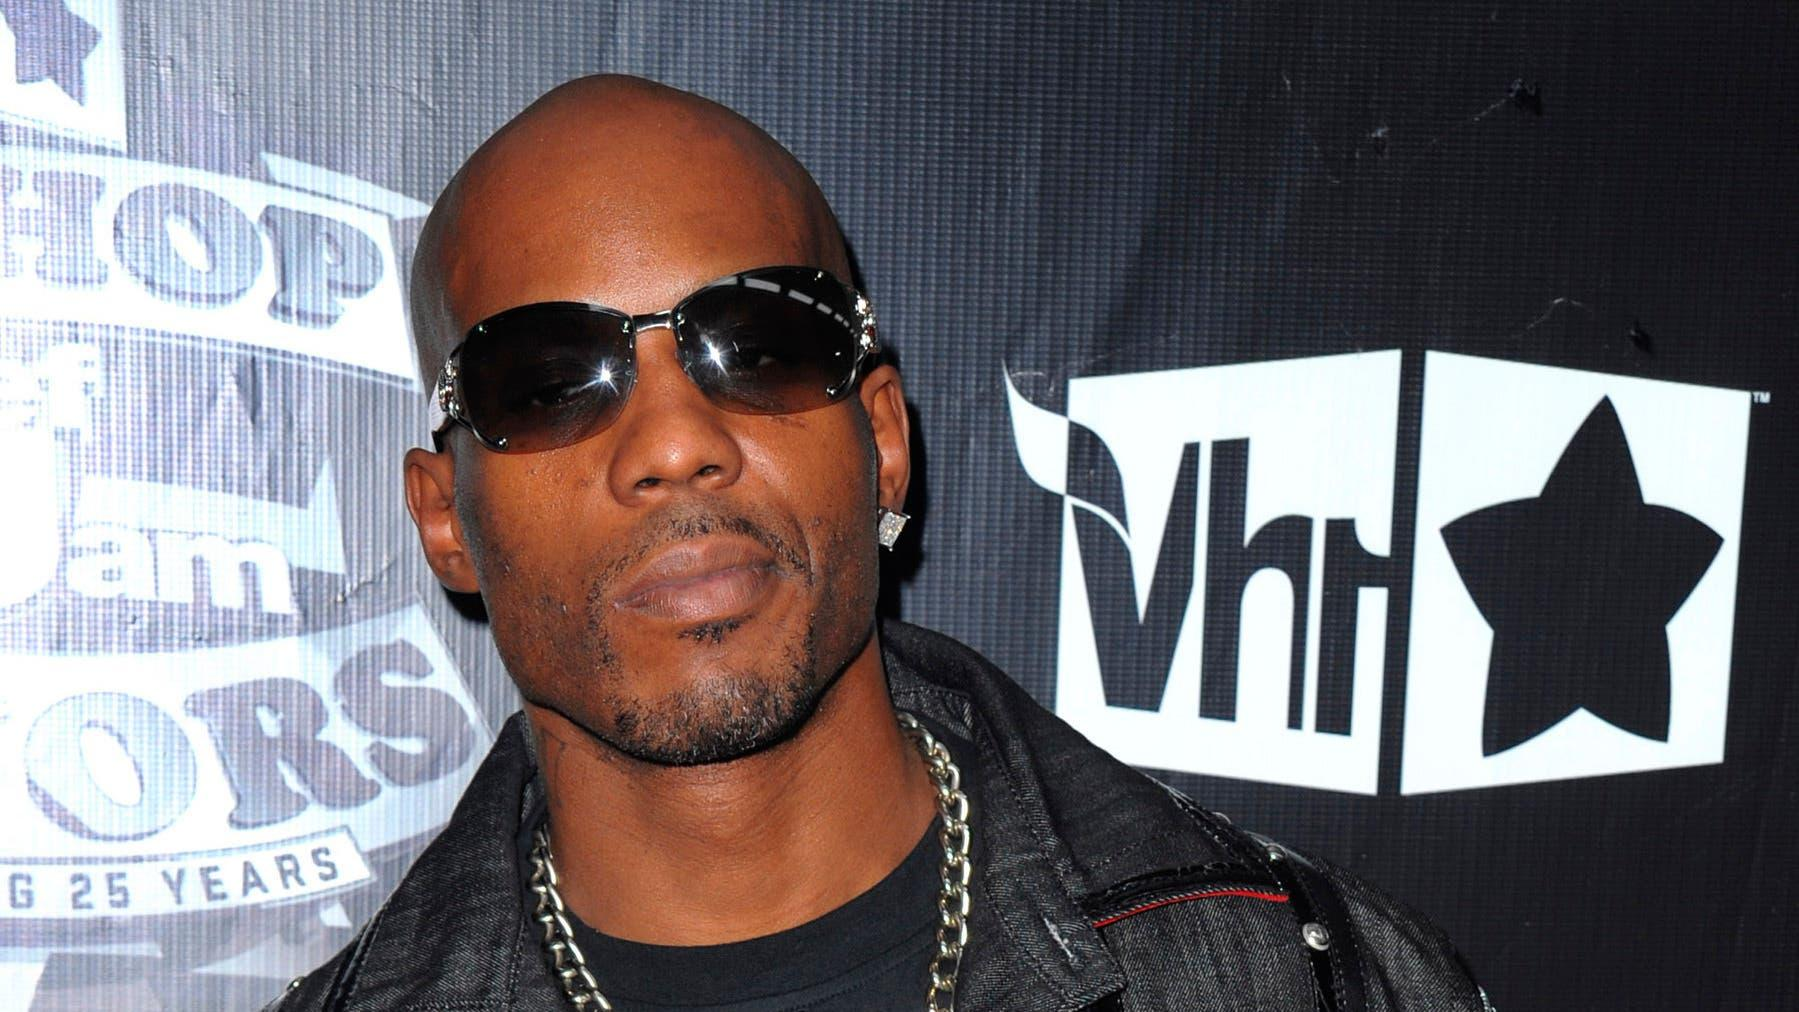 Janet Jackson and The Weeknd remember influential US rapper DMX